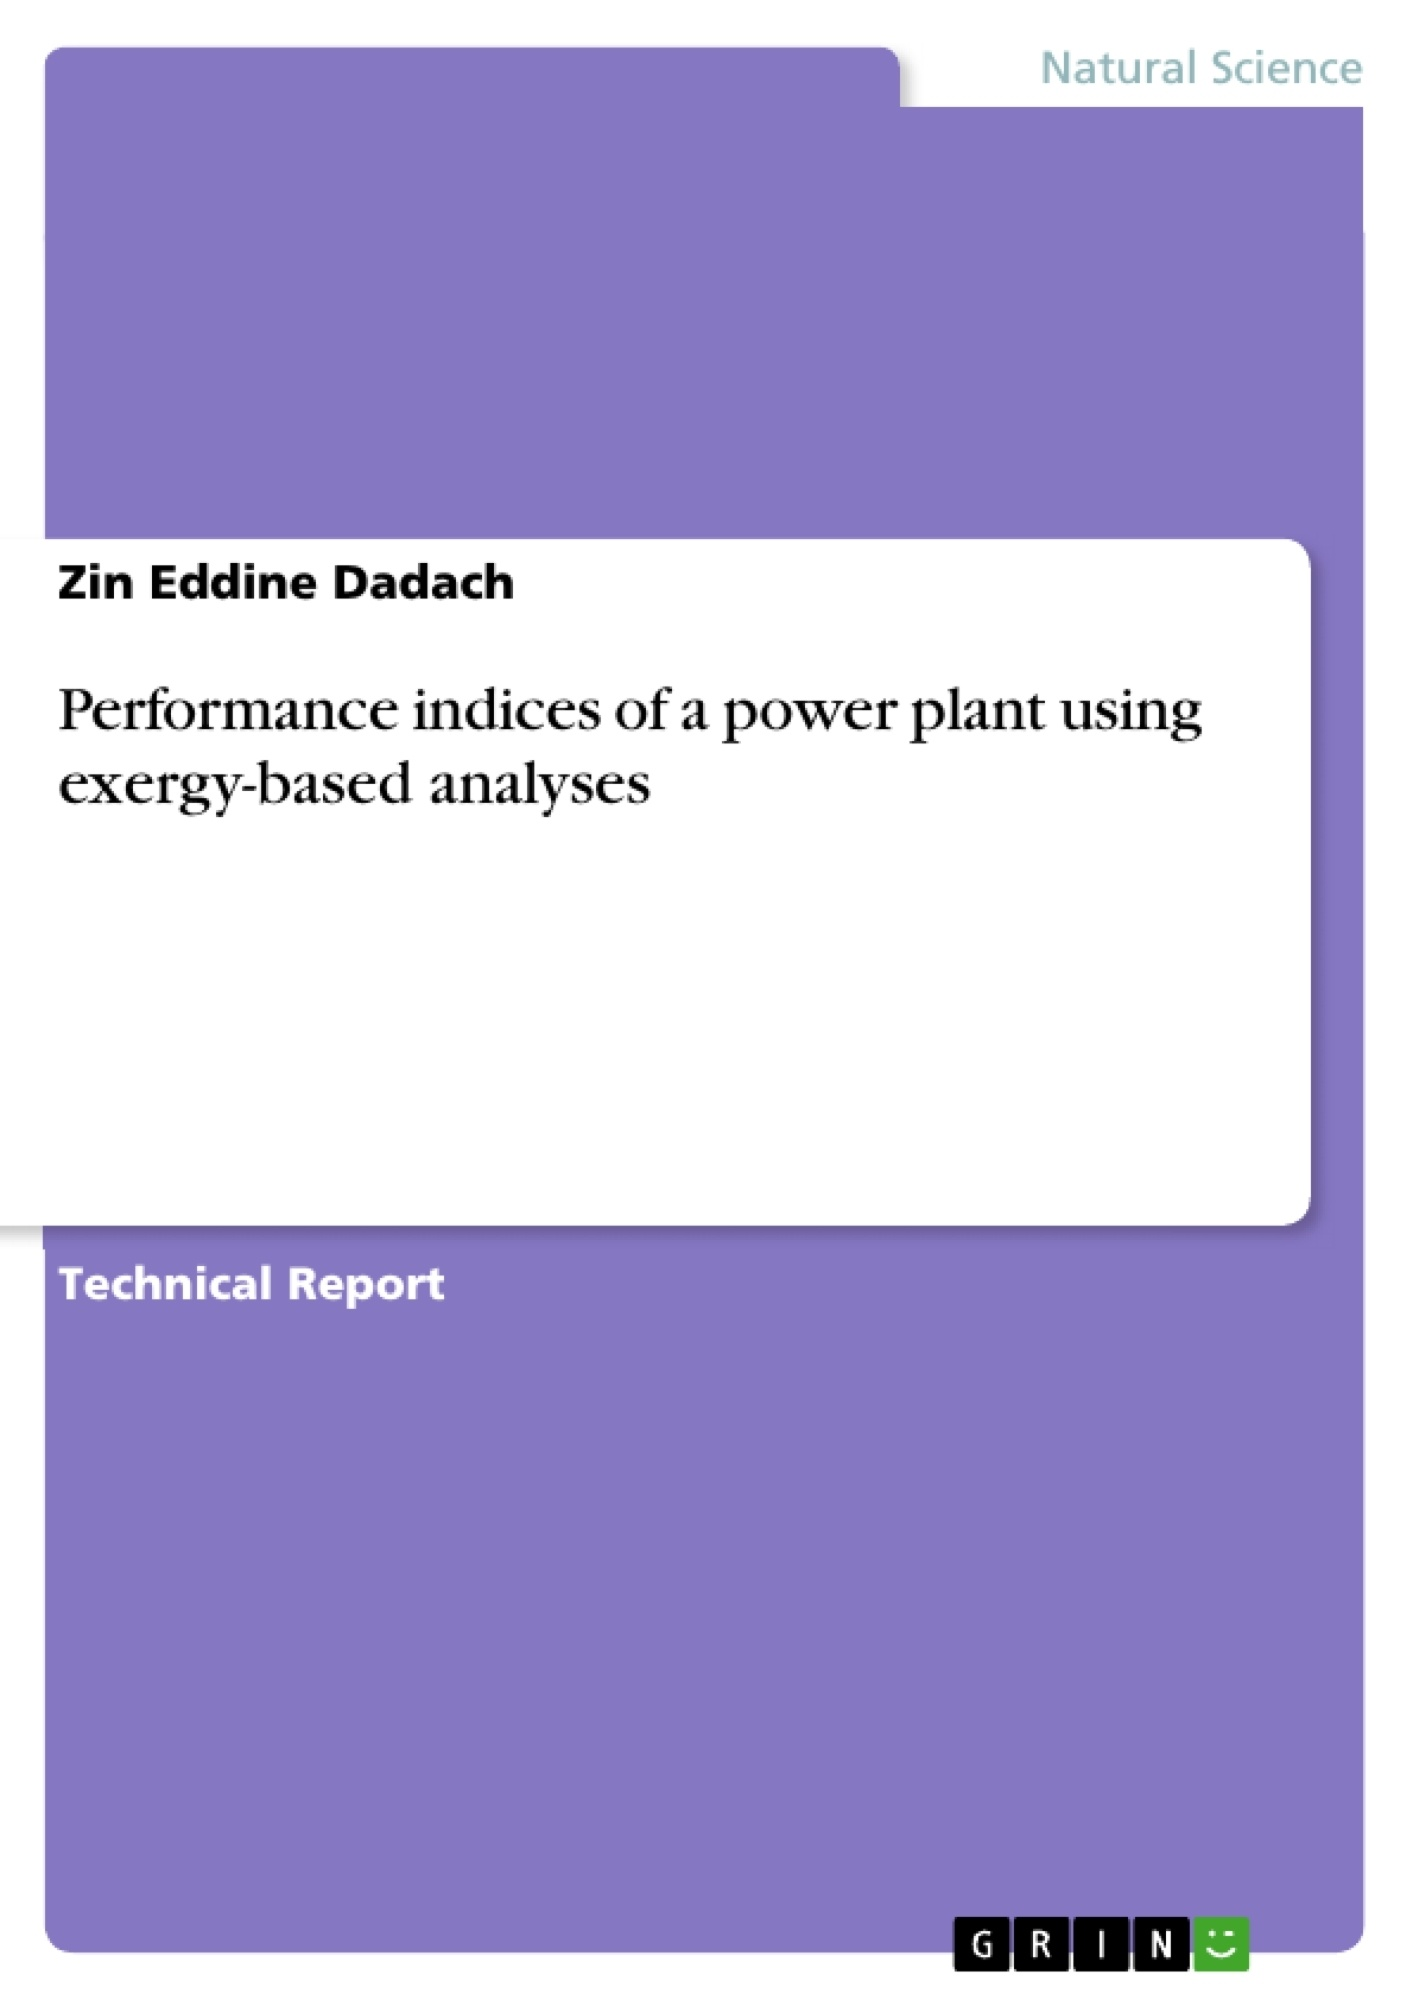 Title: Performance indices of a power plant using exergy-based analyses